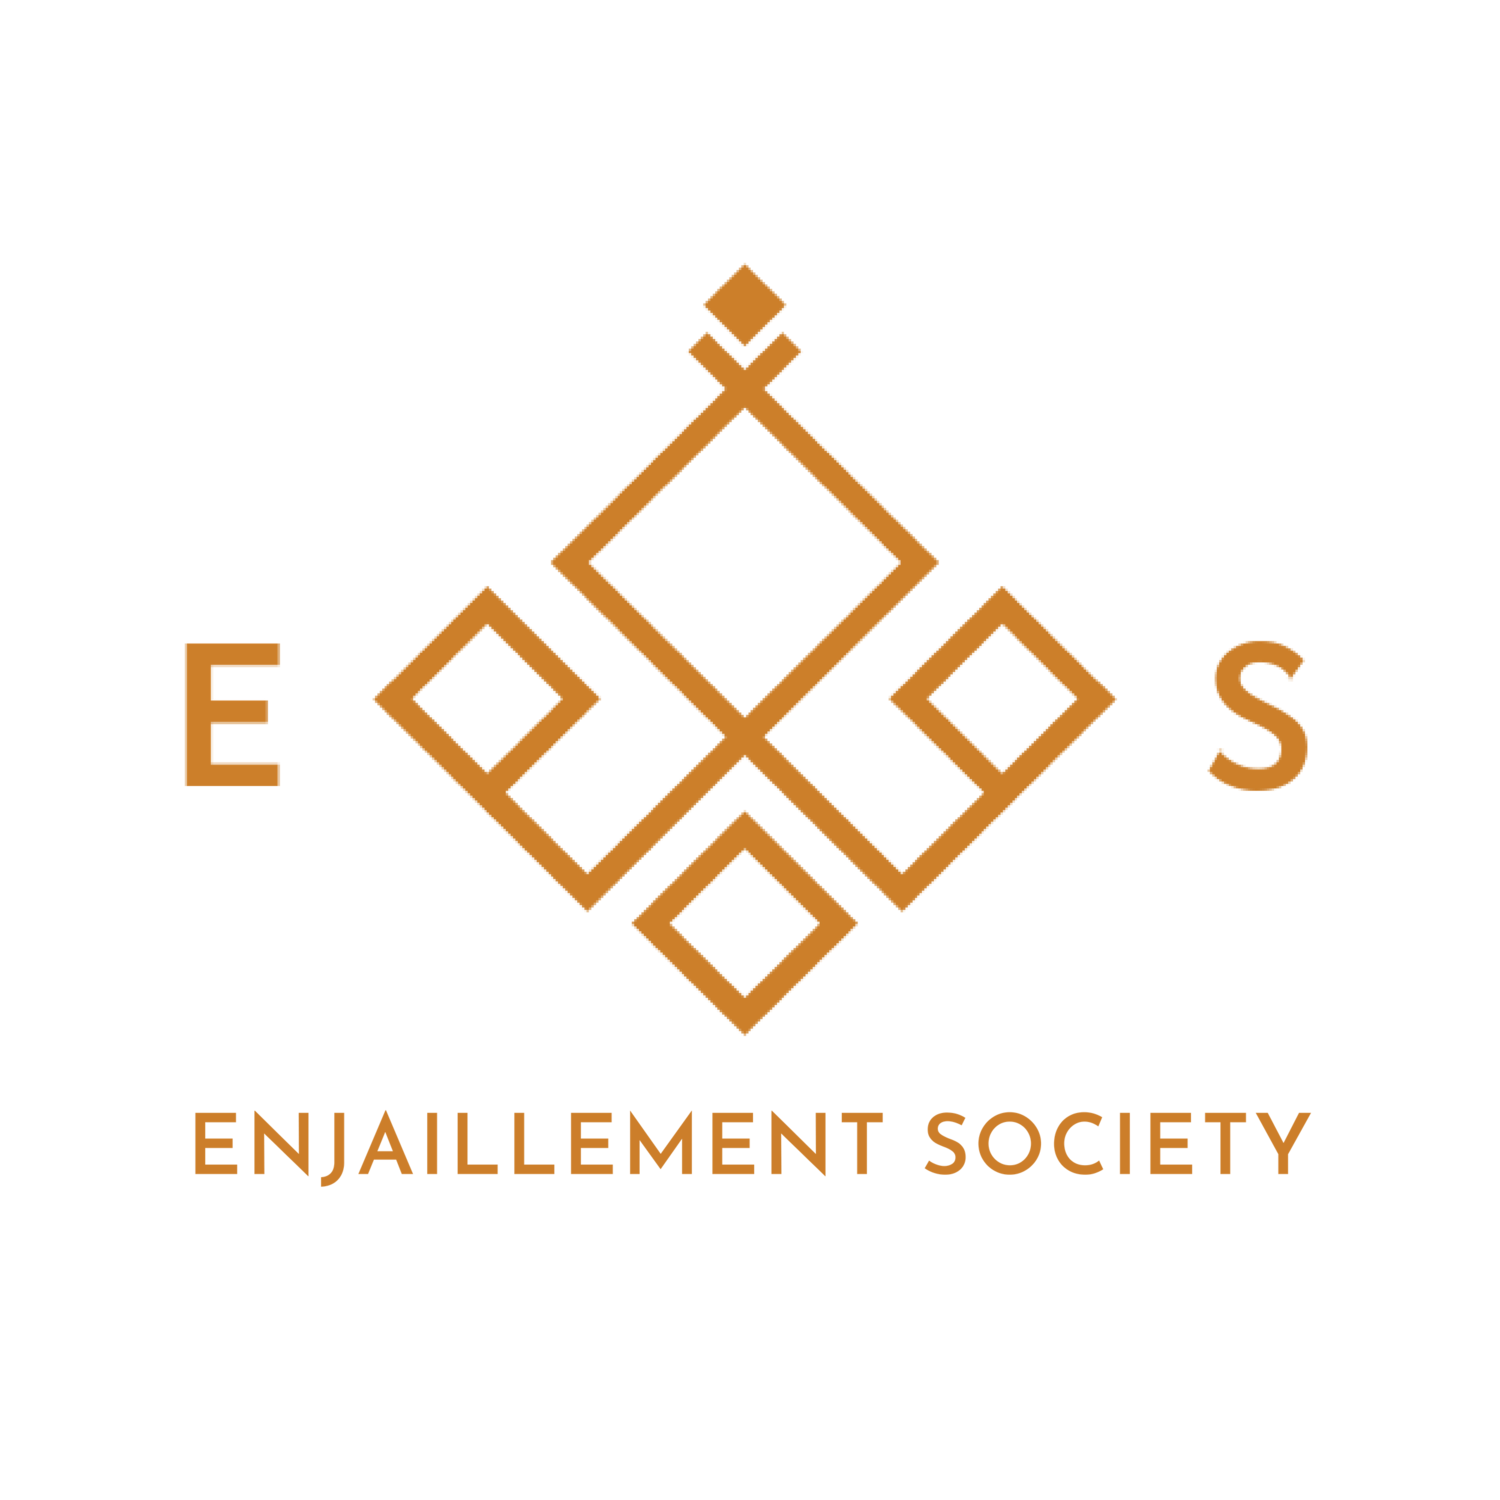 Enjaillement Society